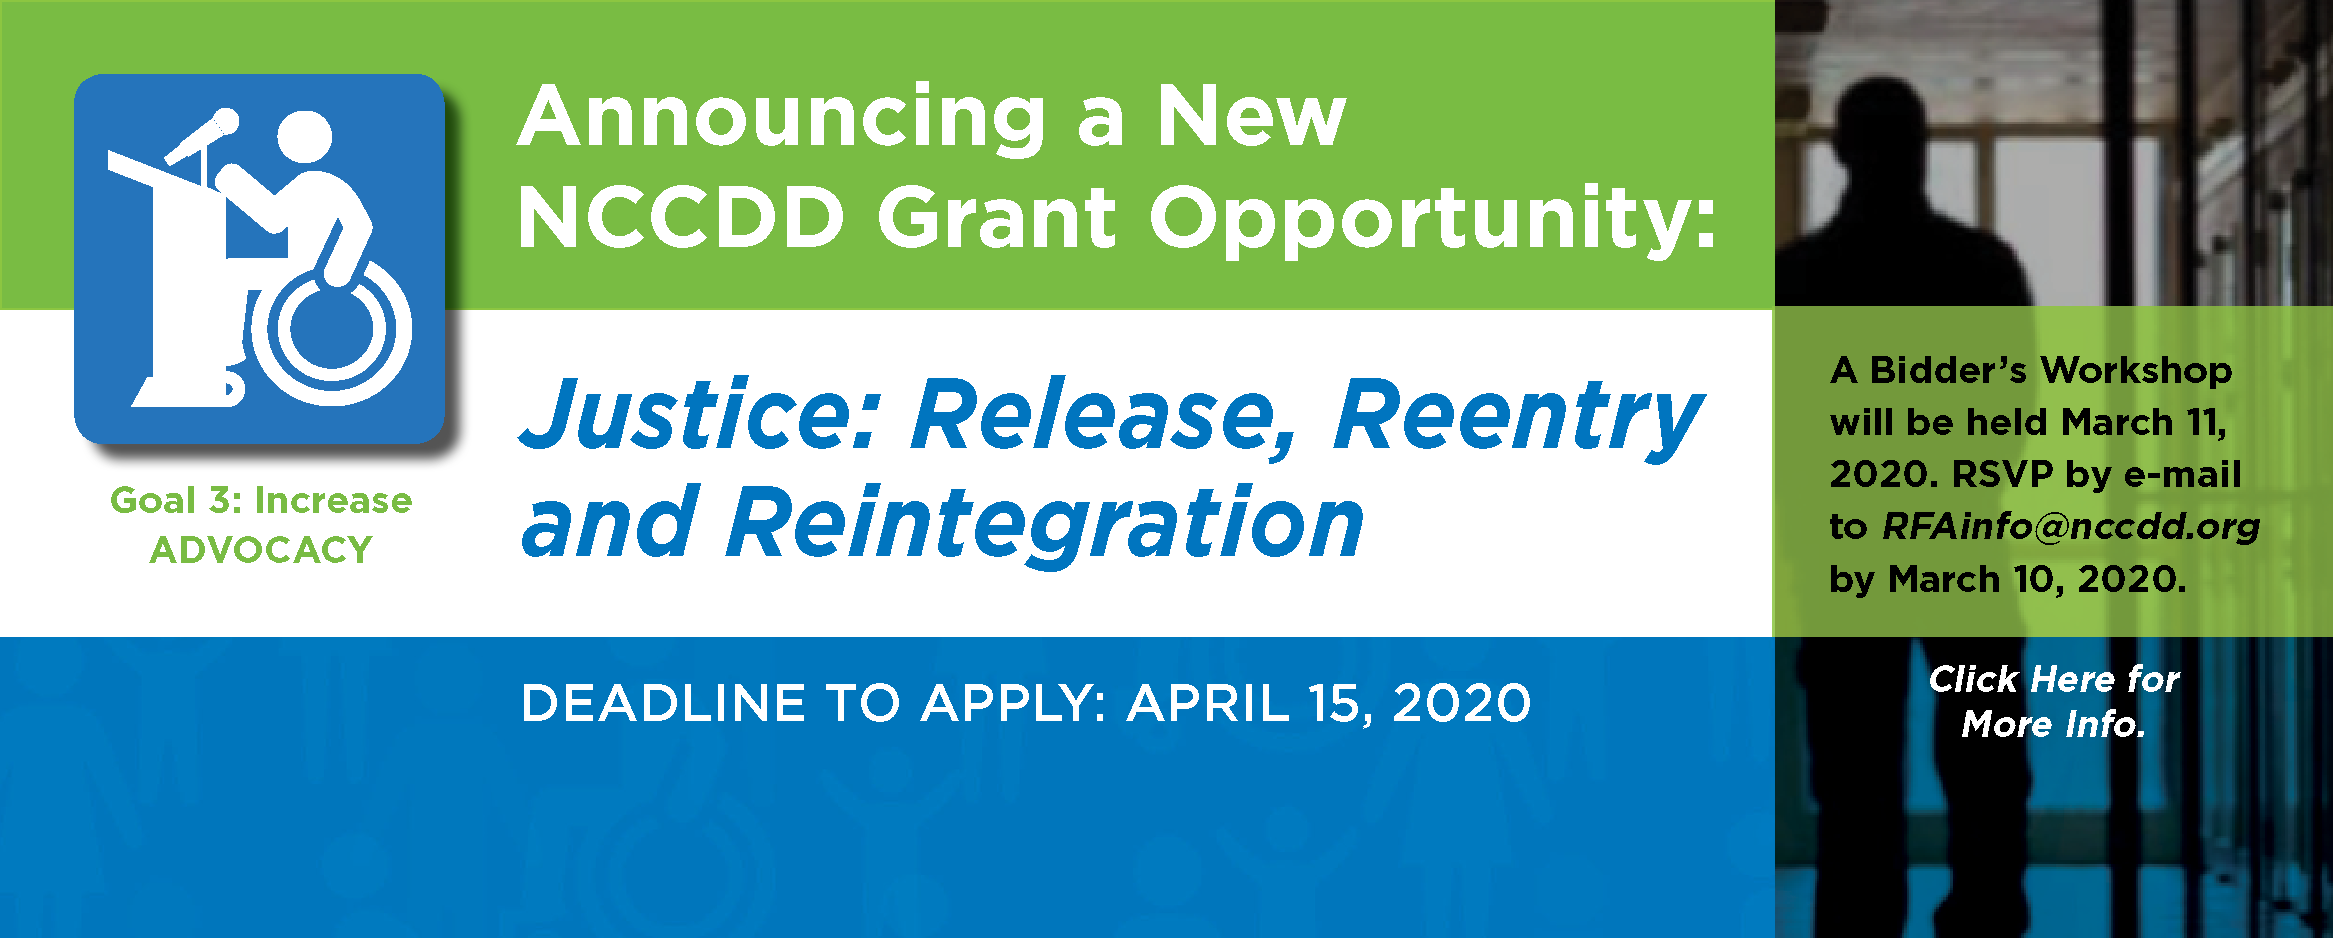 Announcing a New NCCDD Grant Opportunity: Justice: Release, Reentry and Reintegration